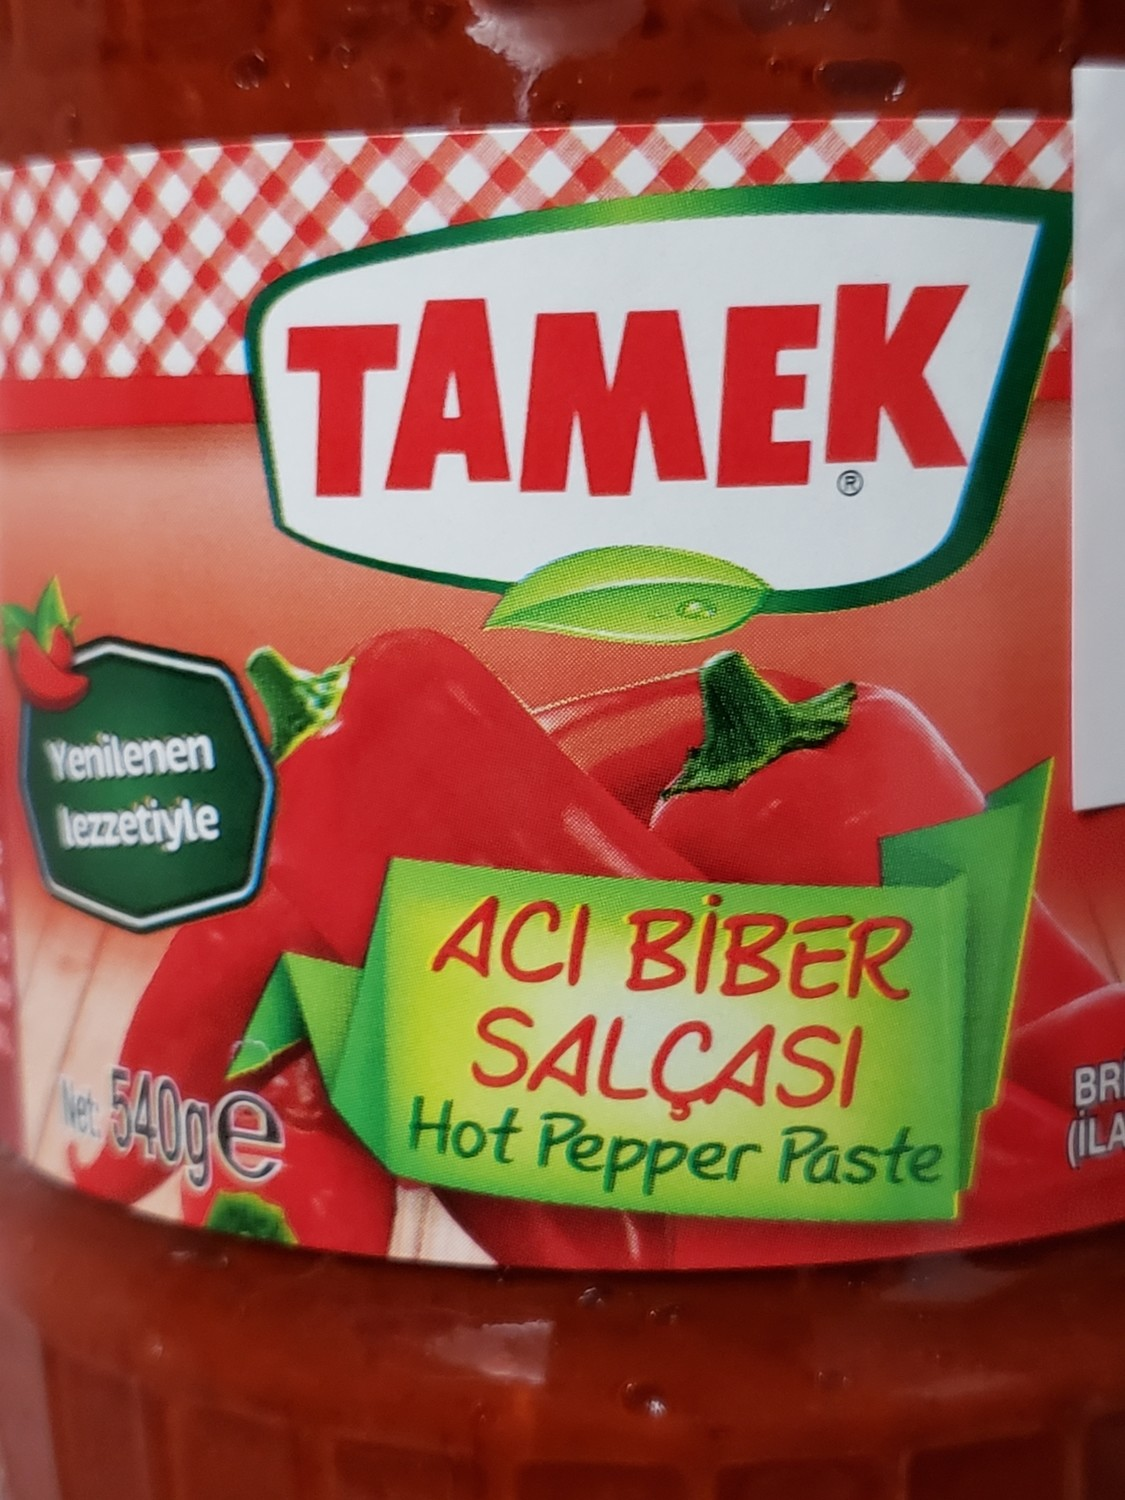 Tamek Hot Pepper Paste